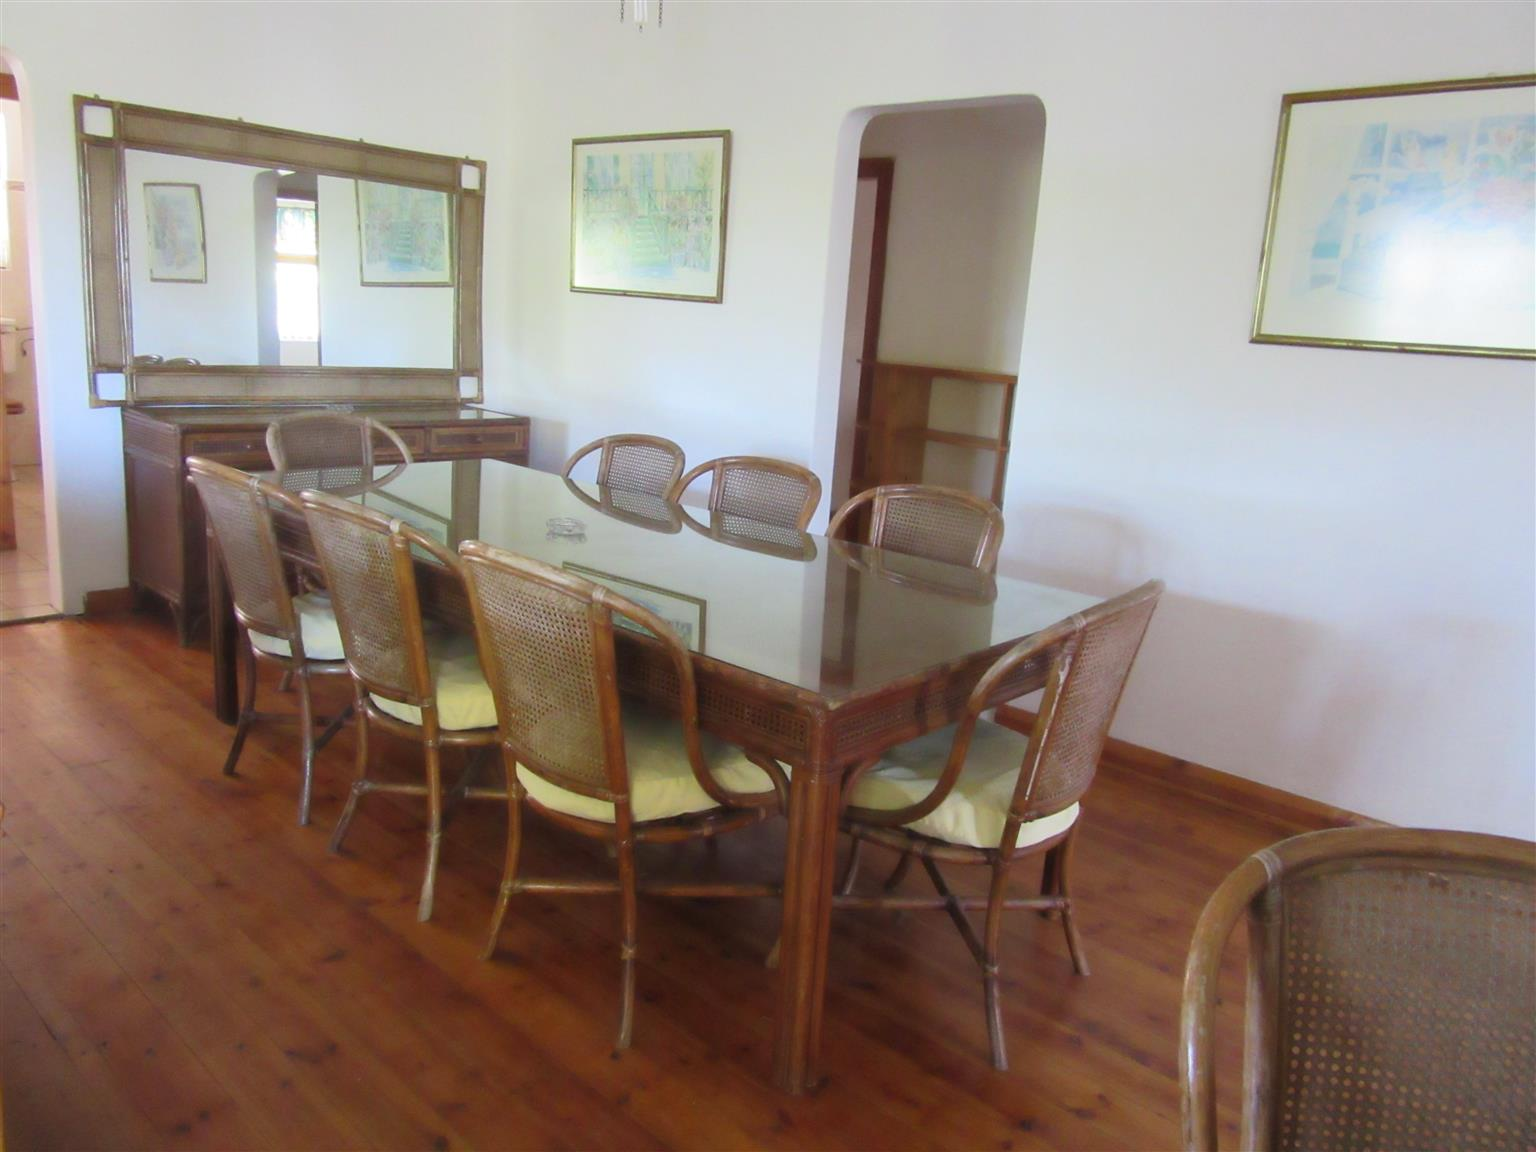 UMTENTWENI 4 BEDROOM HOUSE FOR SALE + COMPLETELY SEPARATE 1 BEDROOM COTTAGE R990,000 FULLY TENANTED